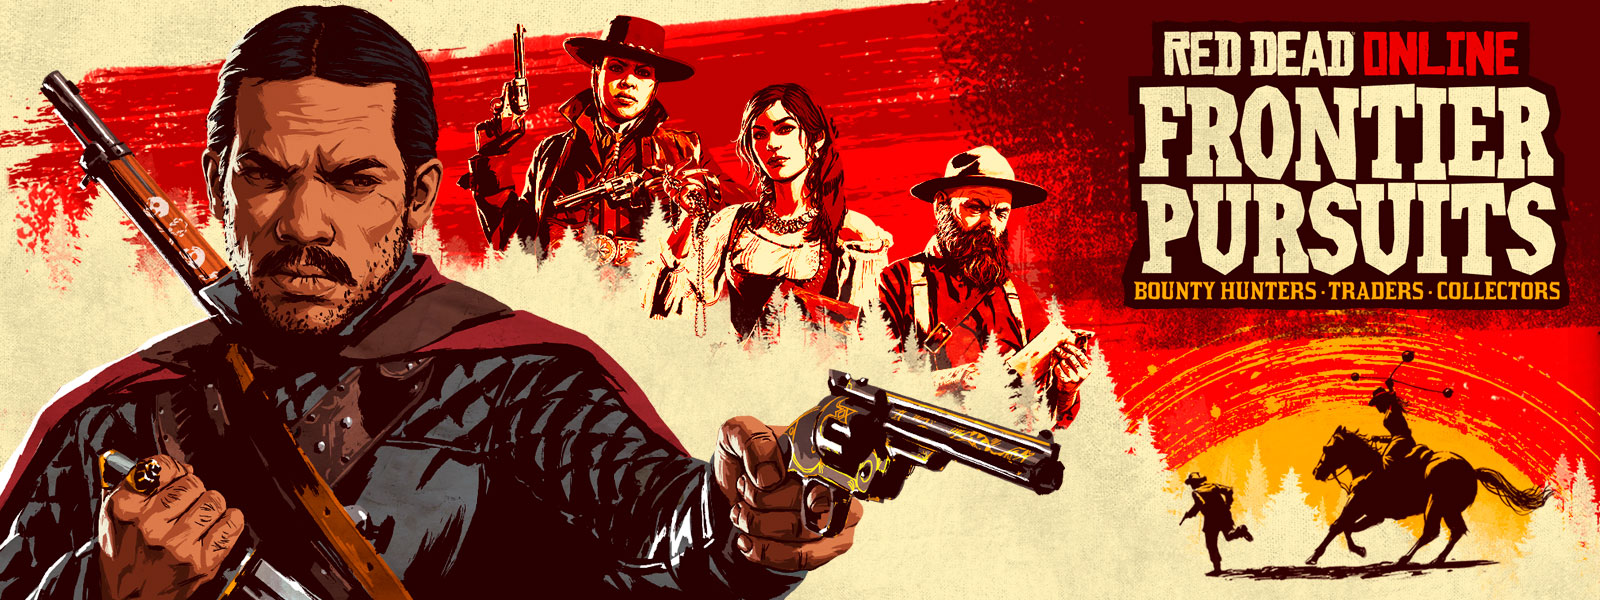 Red Dead Online Frontier Pursuits, Artistic rendering of a man pointing a pistol with 2 women behind him